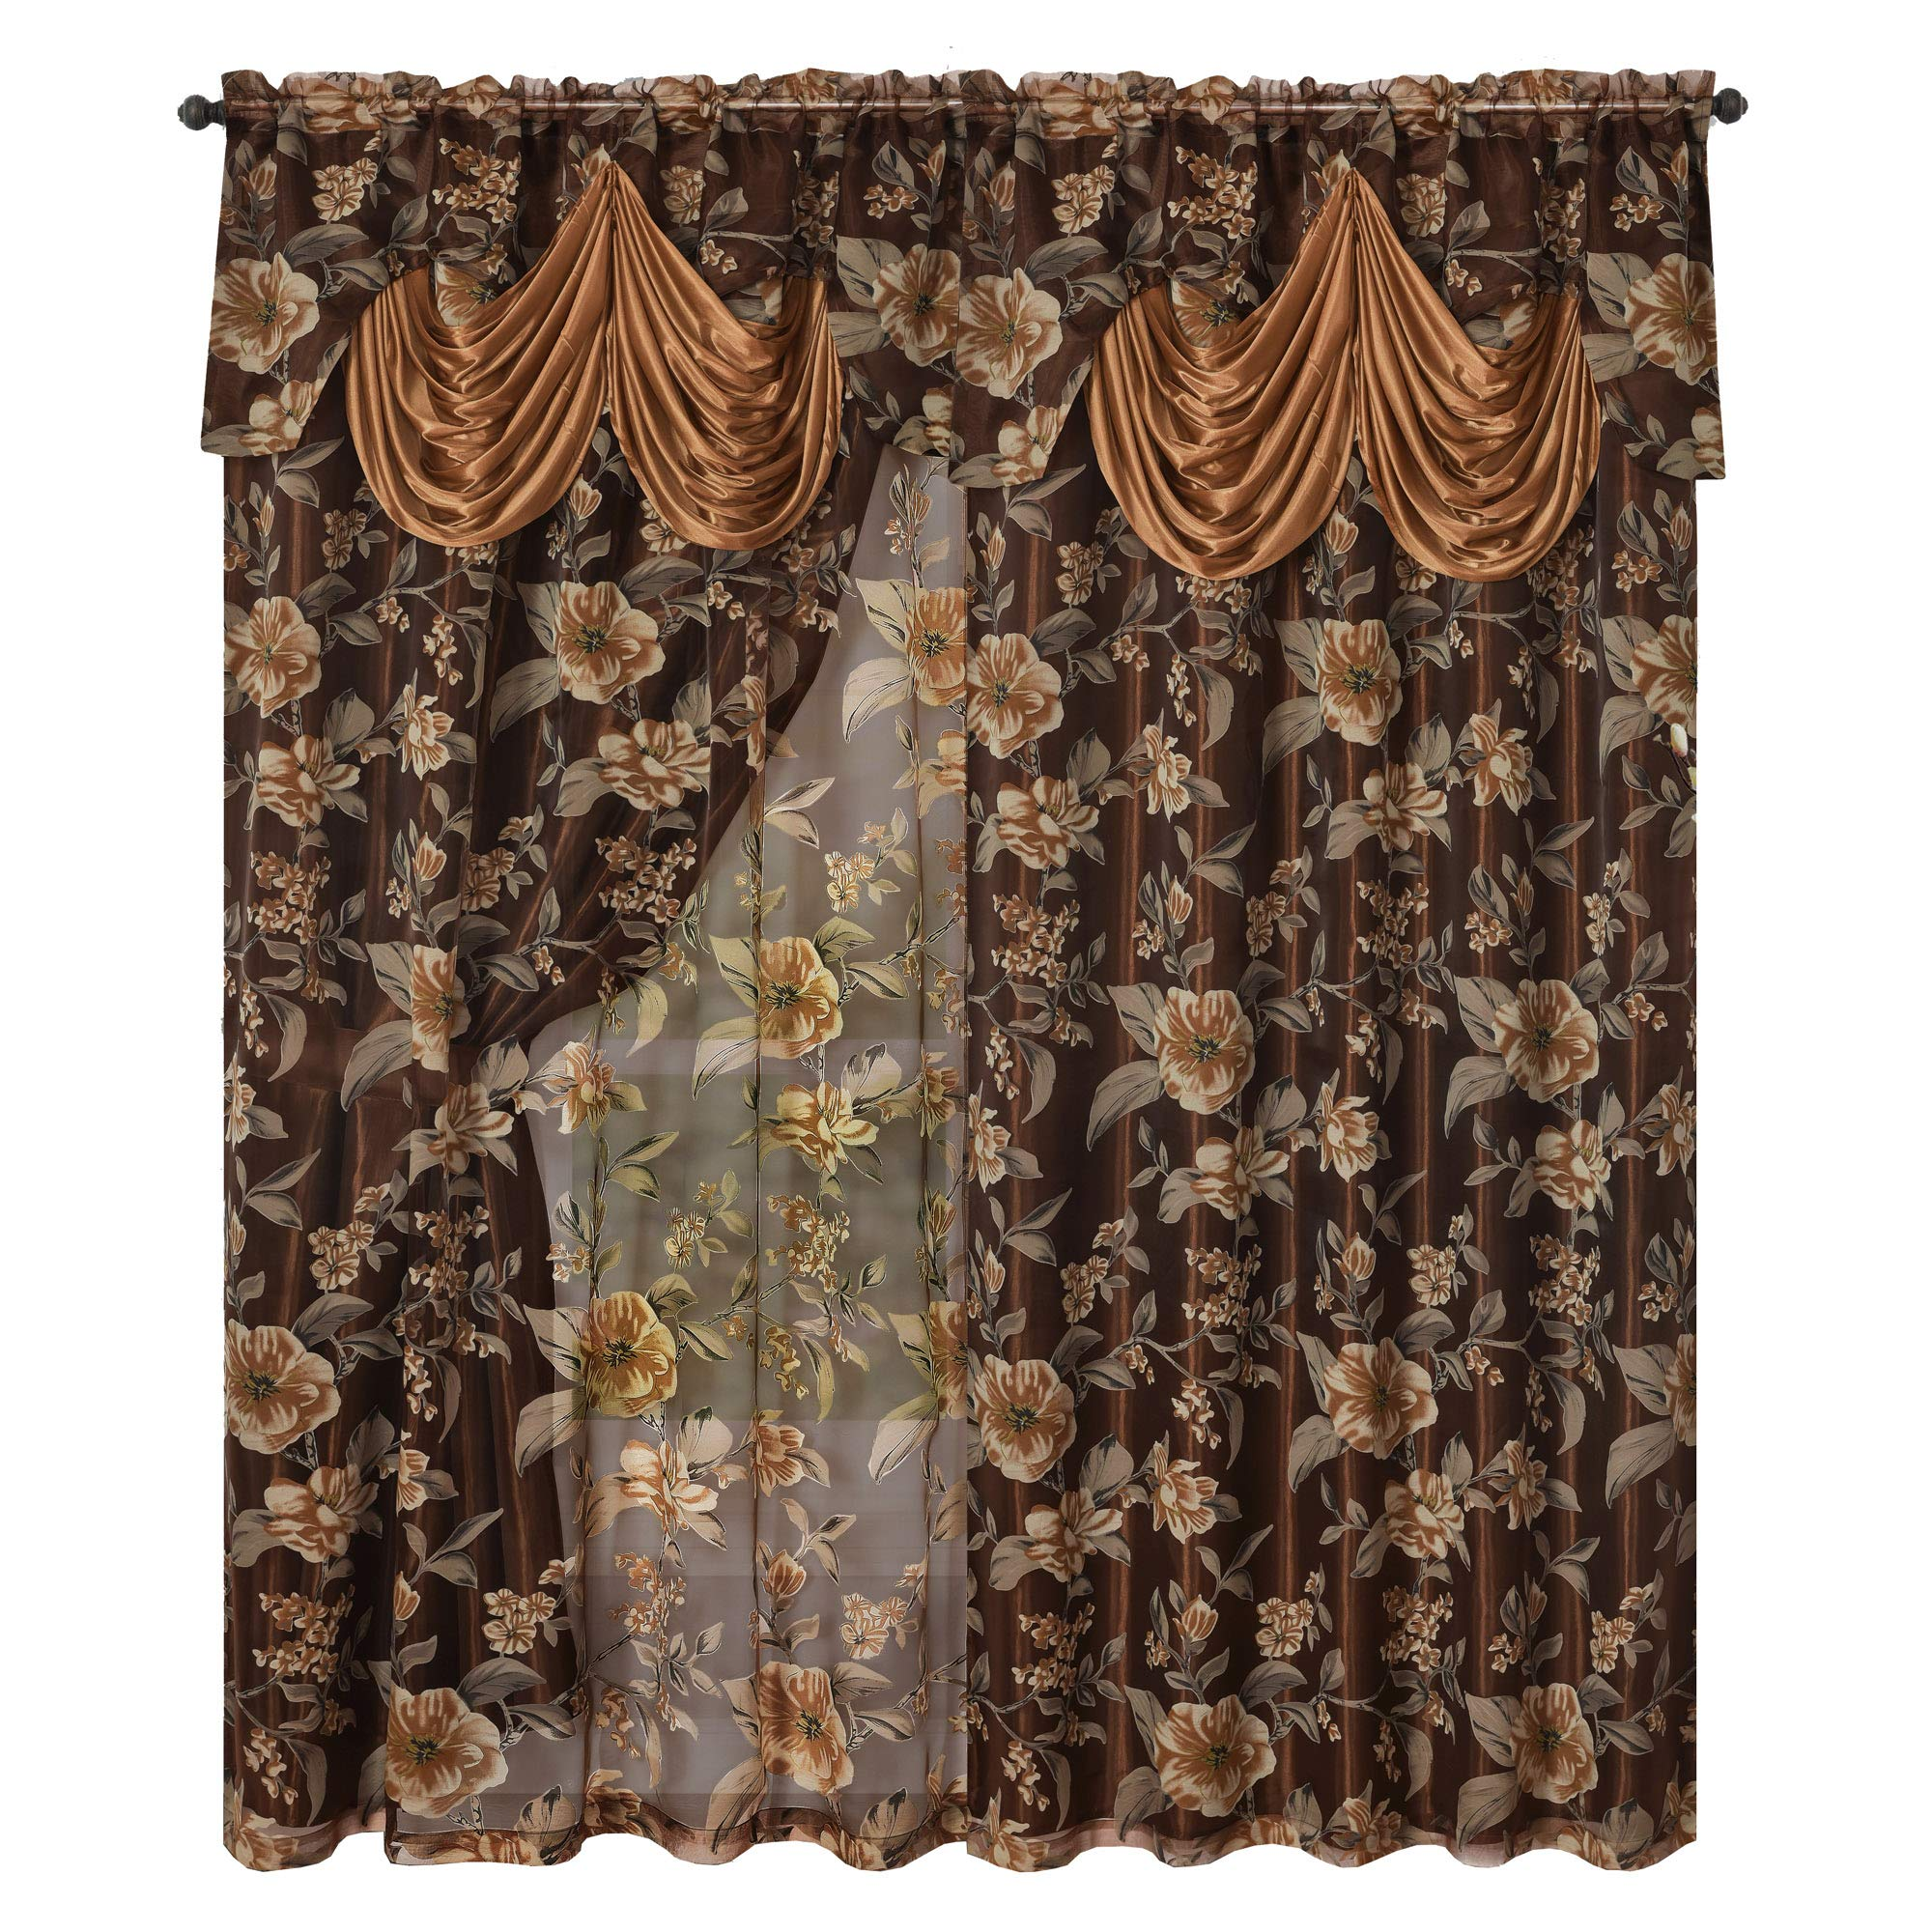 GOHD Golden Ocean Home Decor Roman Romance. Burnt-Out Printed Organza Window Curtain Panel Drape with Attached Fancy Valance and Taffeta Backing (Brown, 55 x 84 inches + Attached Valance x 2pcs) by GOHD Golden Ocean Home Decor